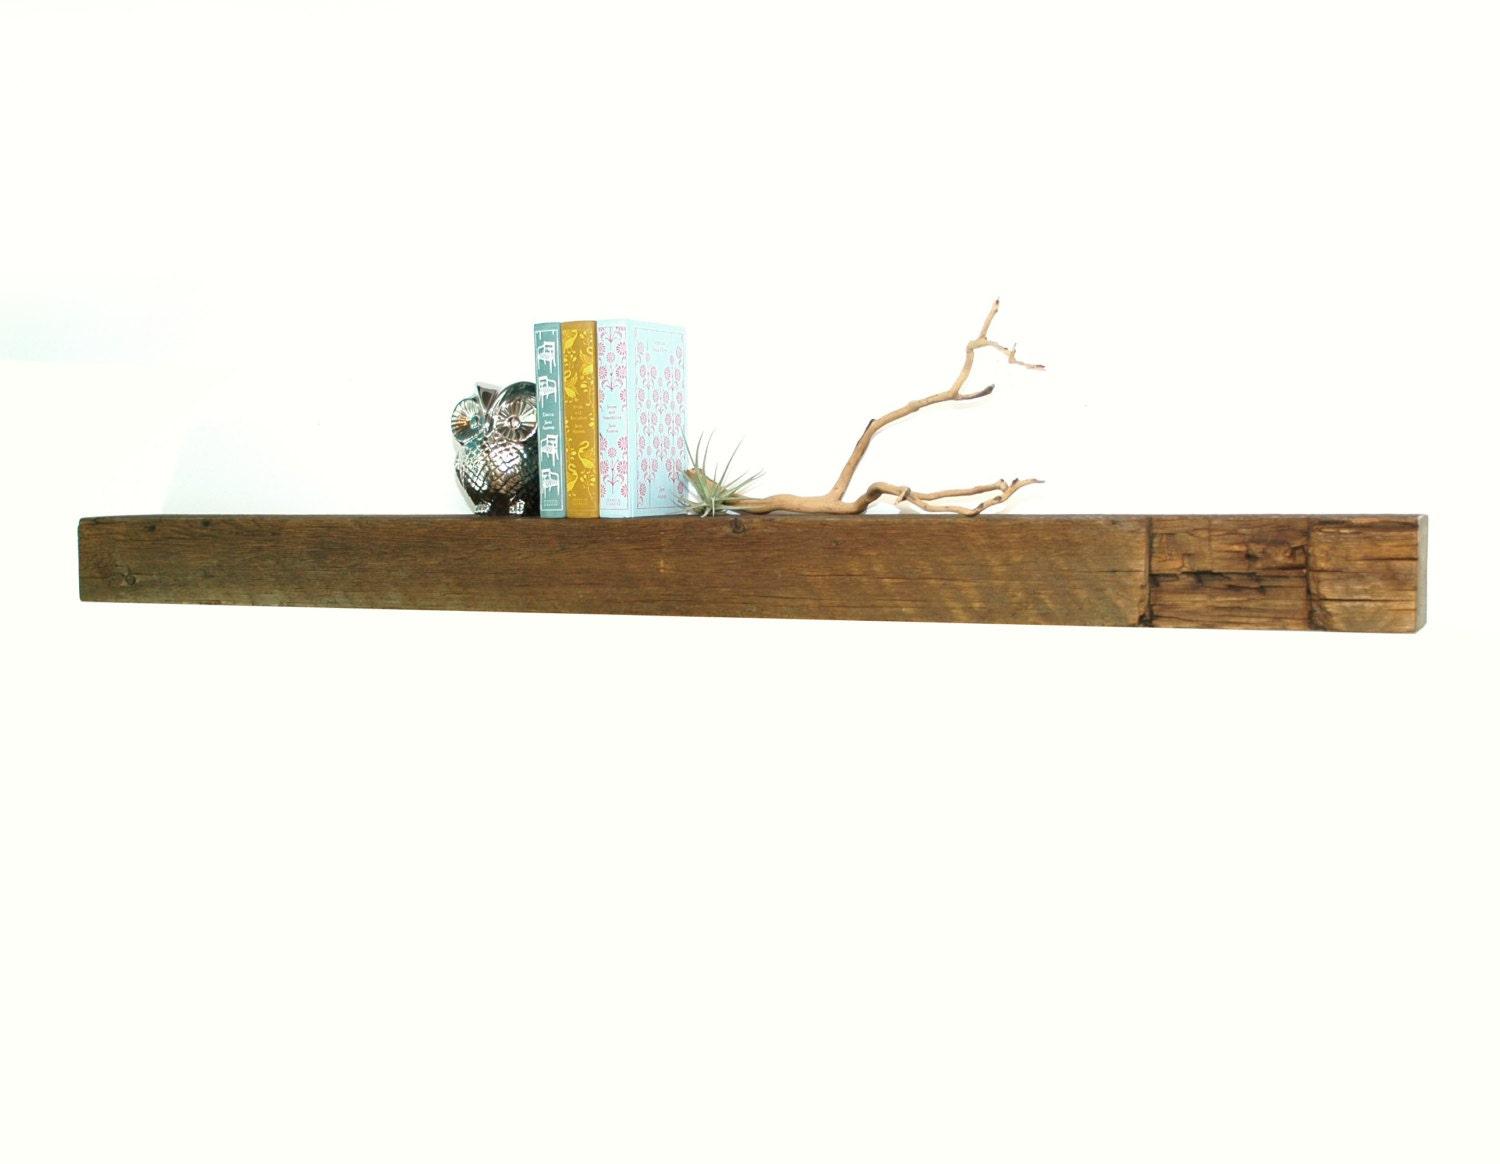 reclaimed wood fireplace mantel or floating shelf 48